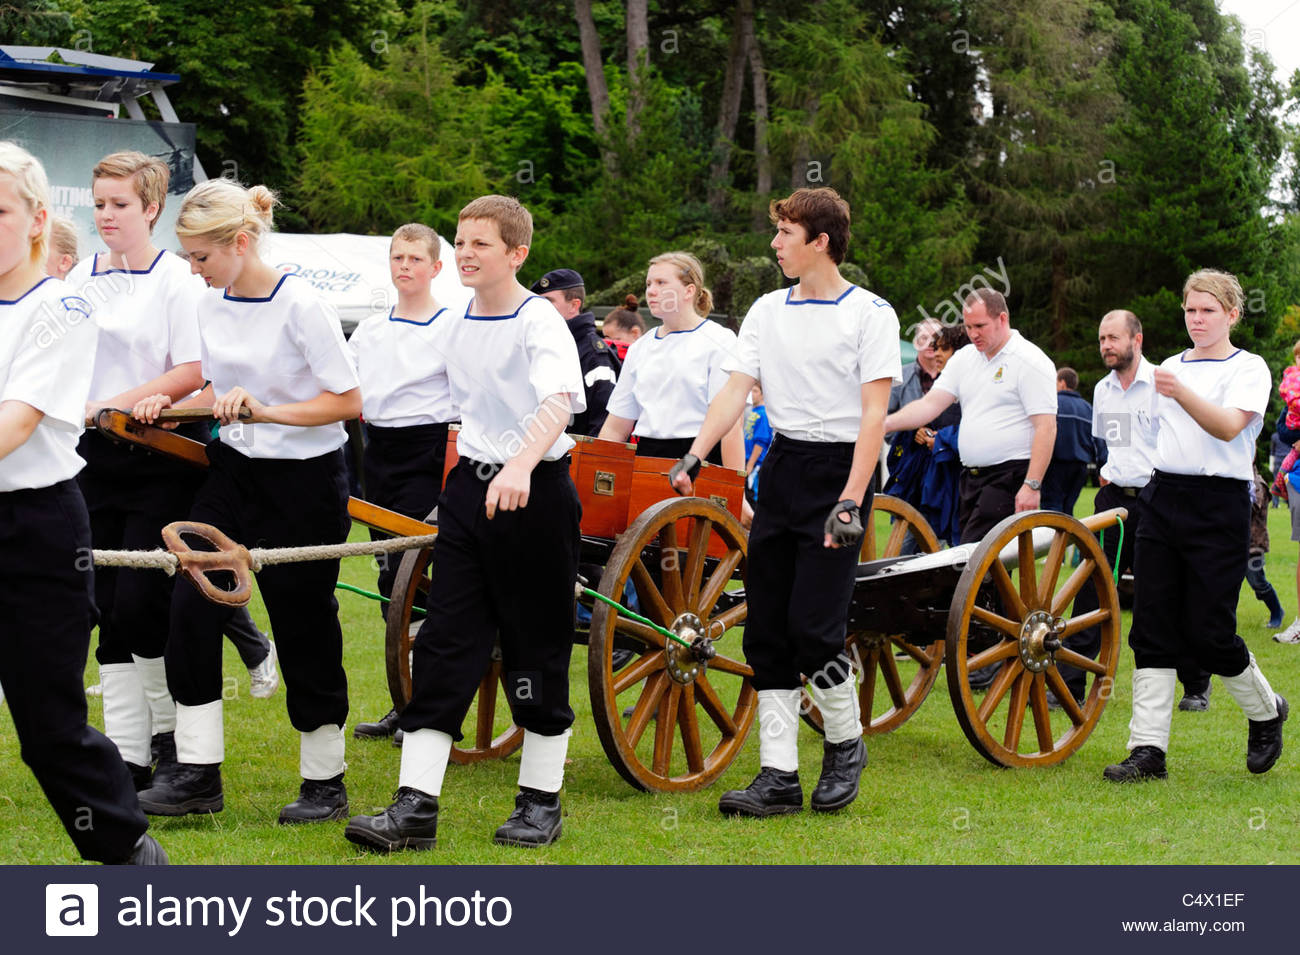 HMS Collingwood volunteer cadet corps field gun team, Armed Forces Day, Bute Park, Cardiff, Wales, UK. - Stock Image